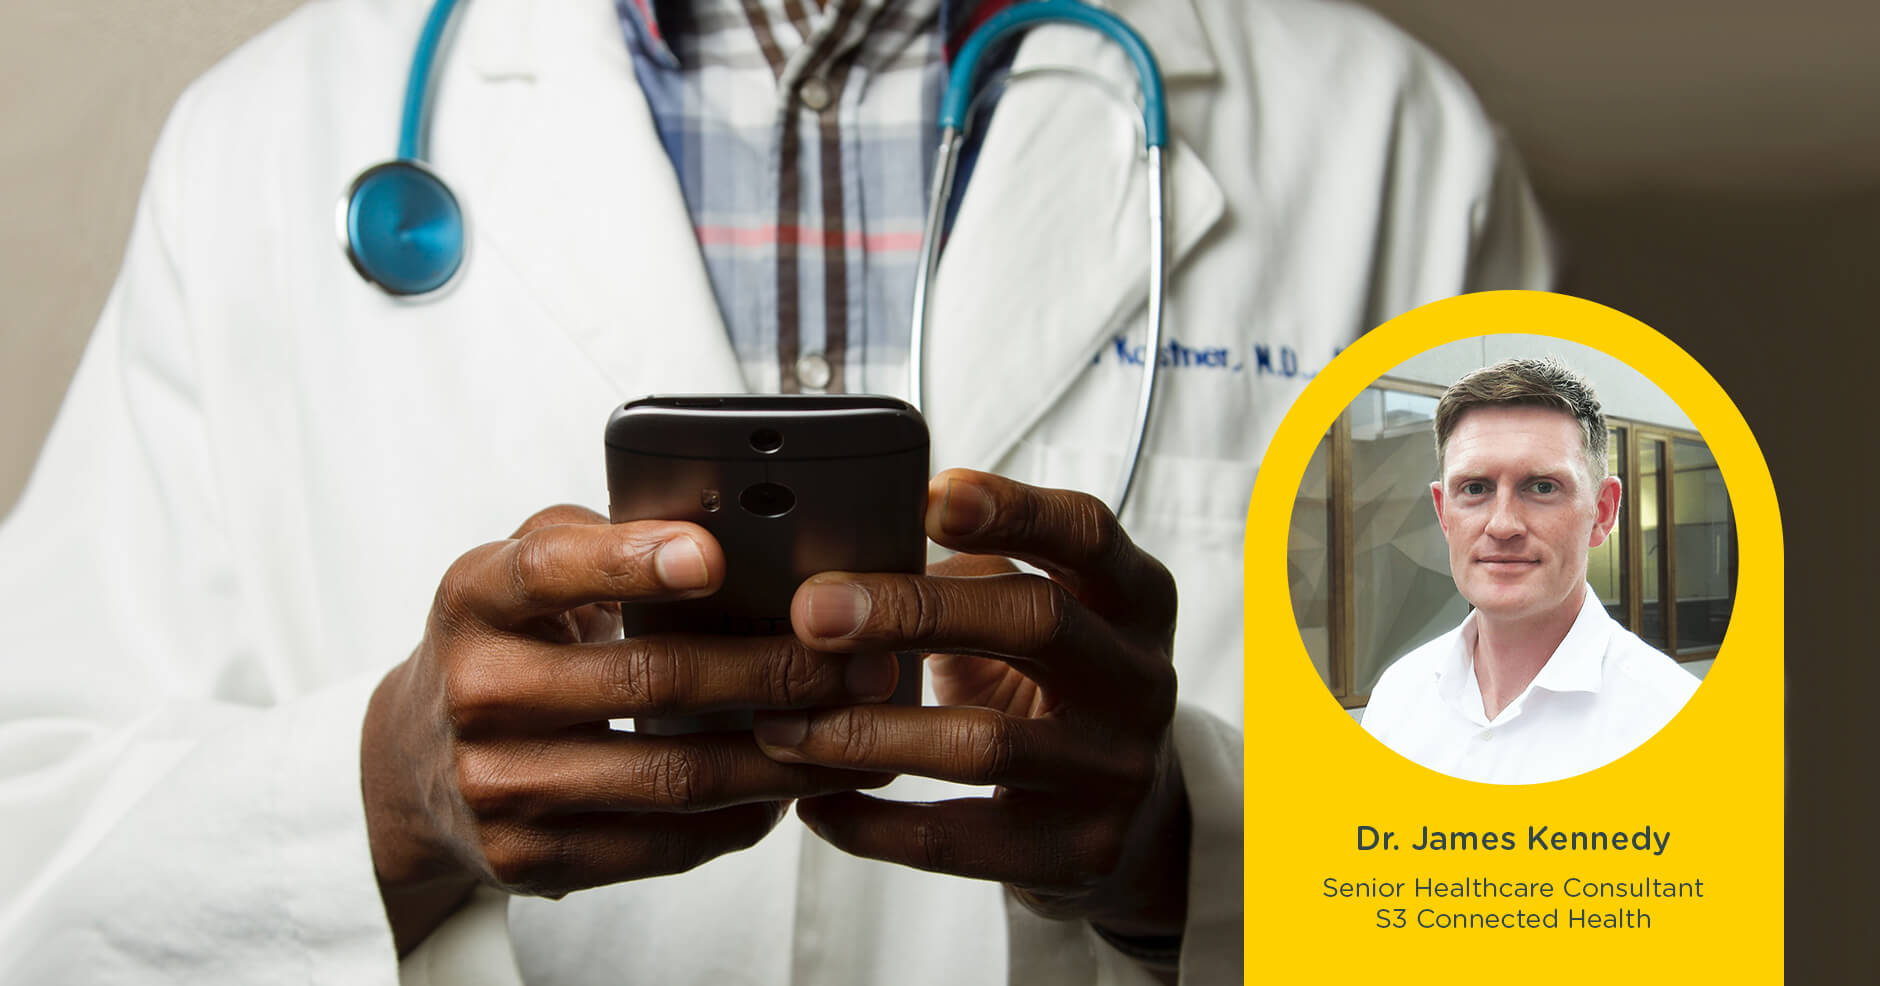 Digital health adoption: what does digital health mean for doctors and how should we engage with them?